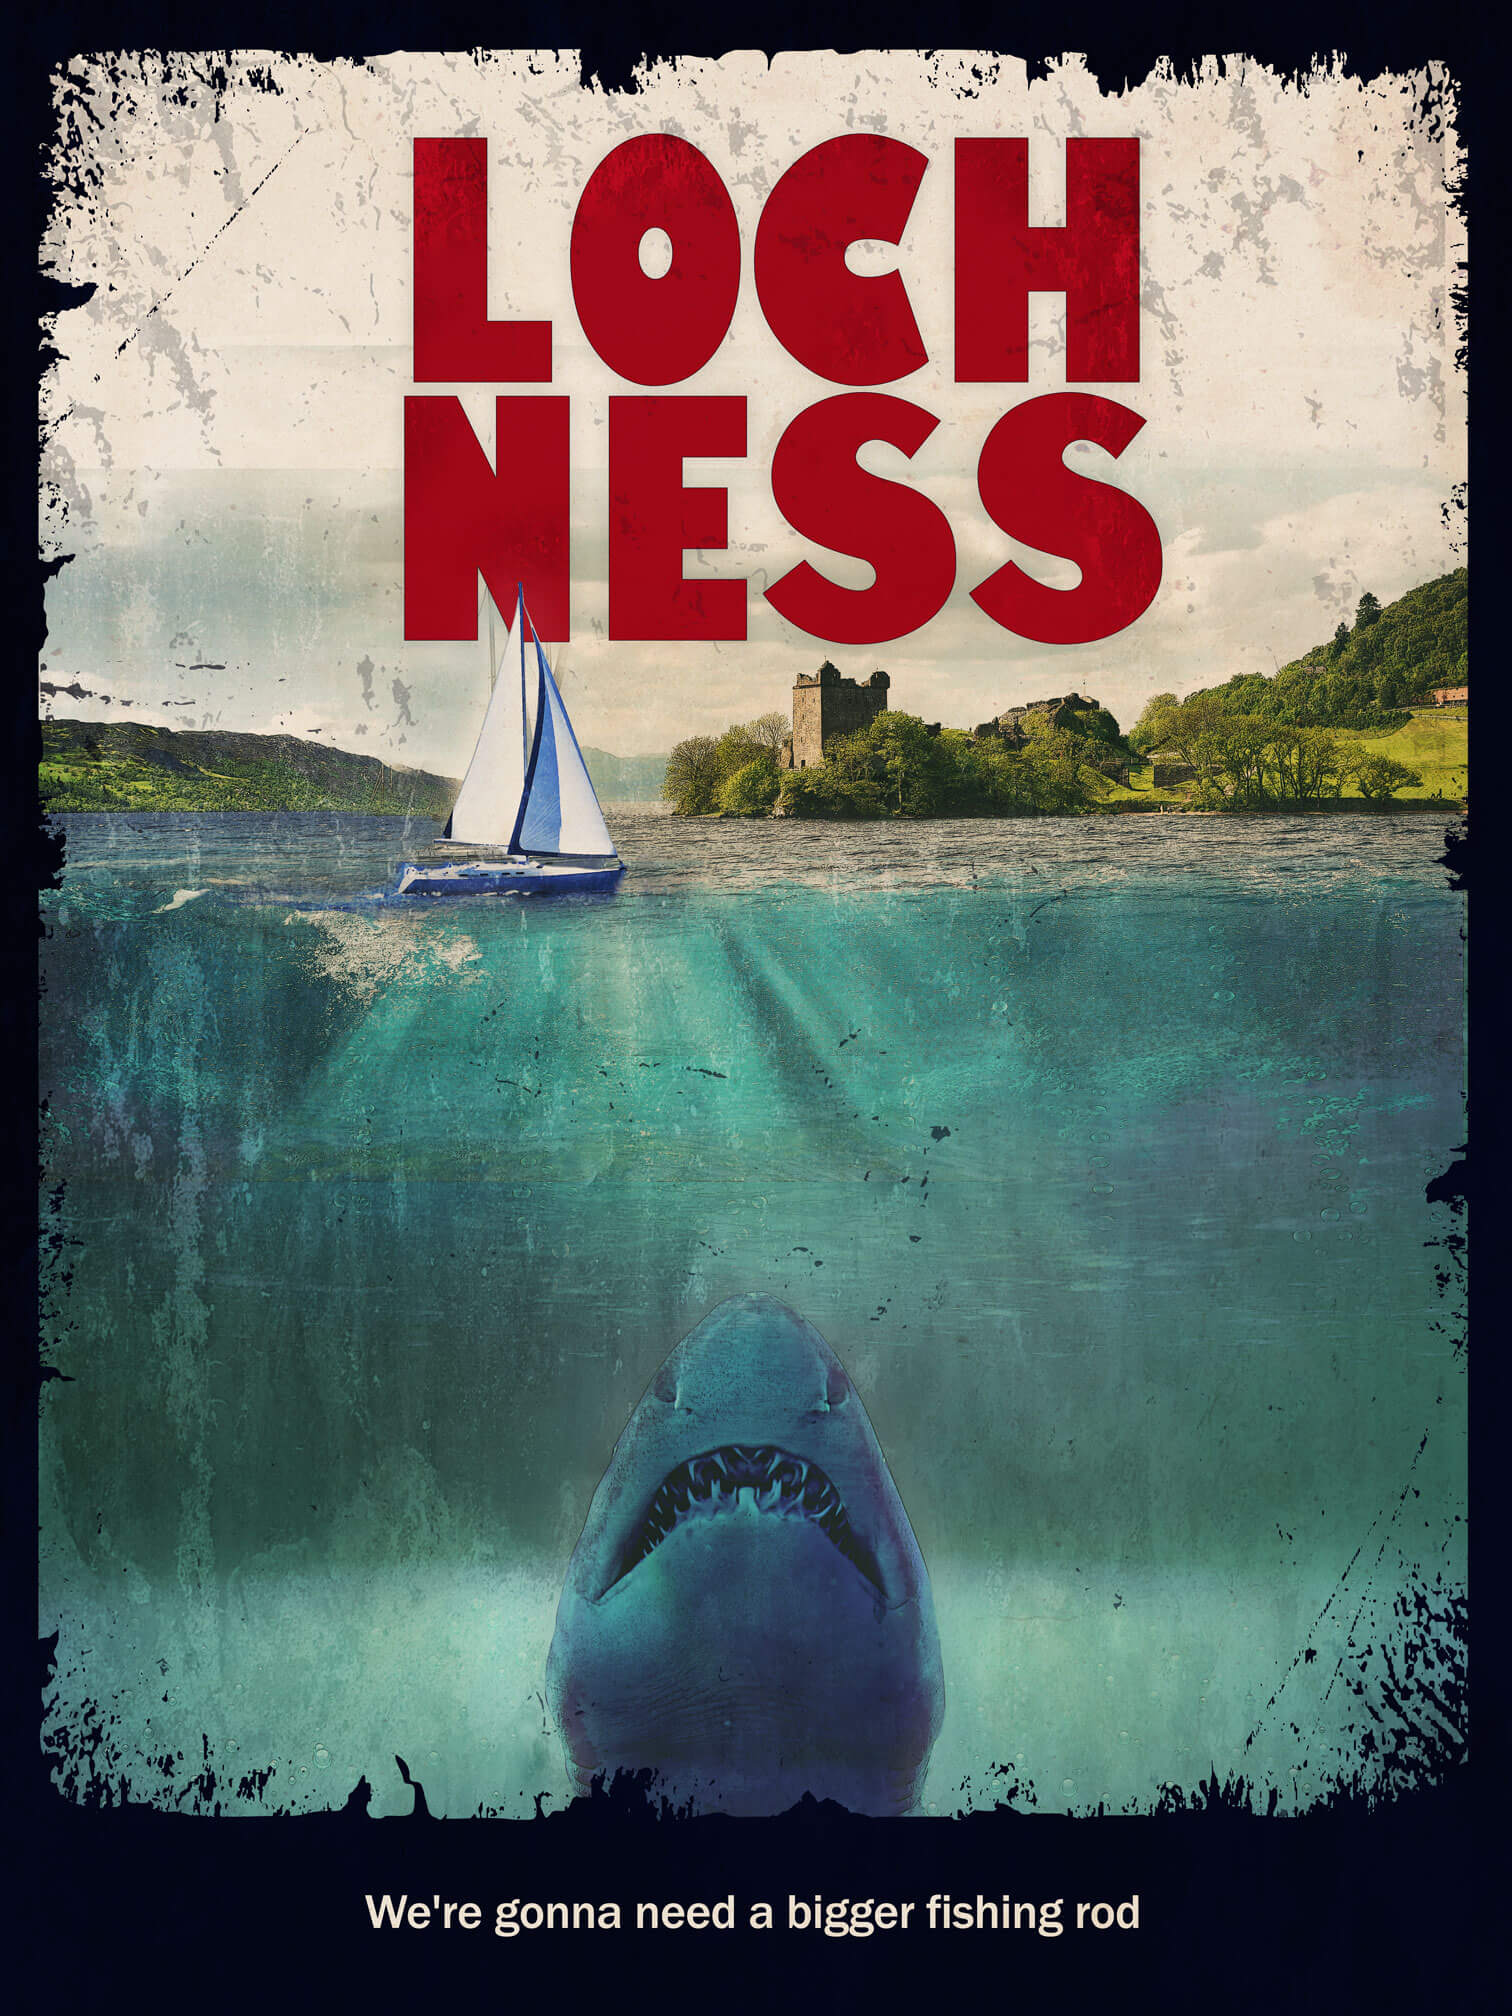 Jaws at Loch Ness